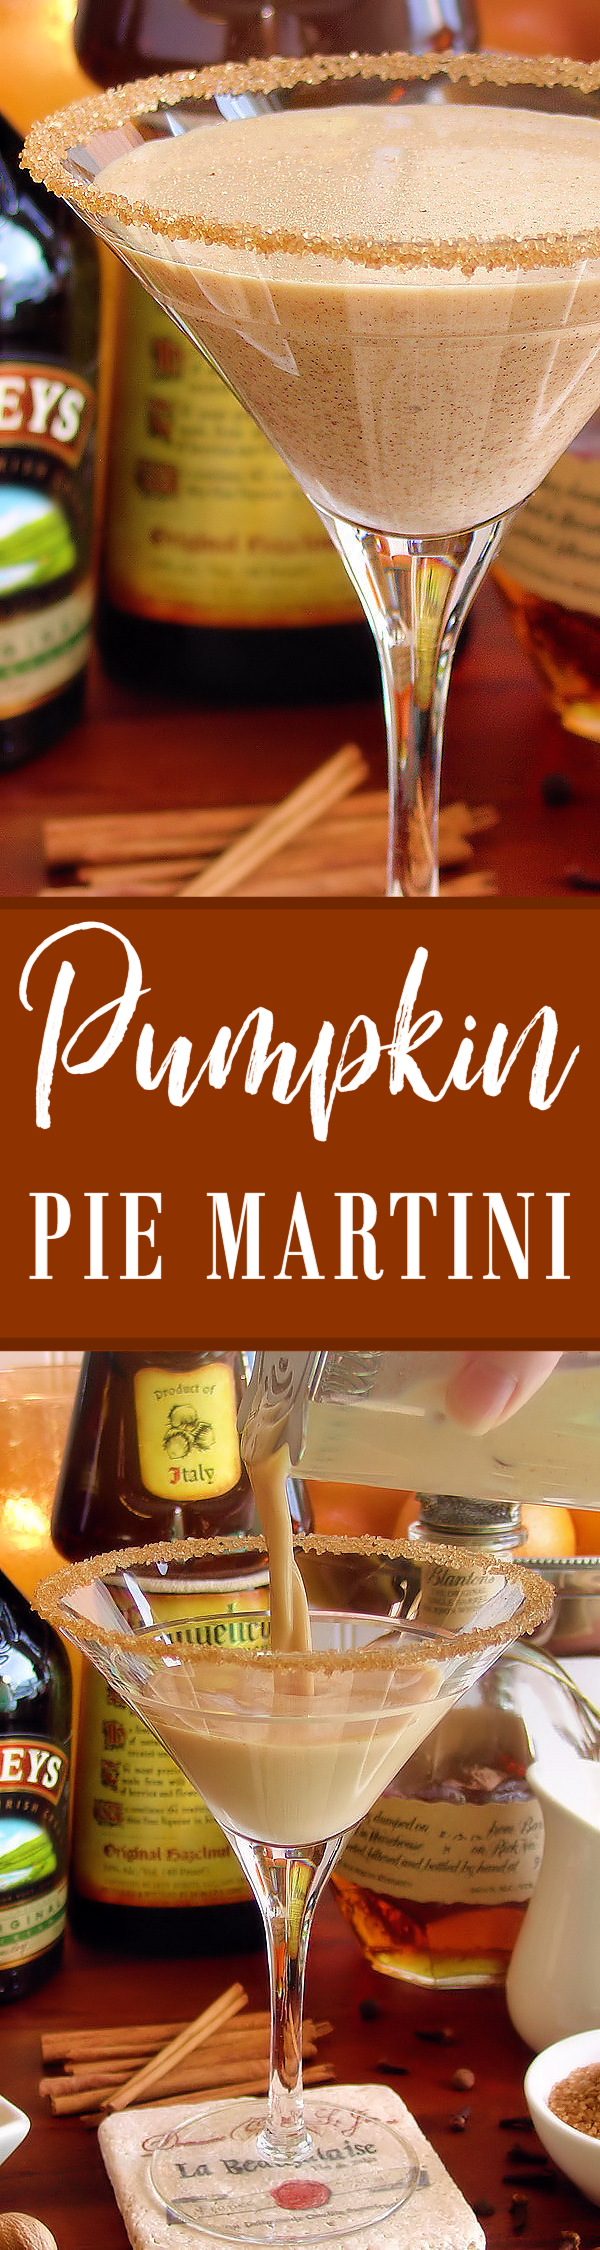 Pumpkin Pie Martini Cocktail